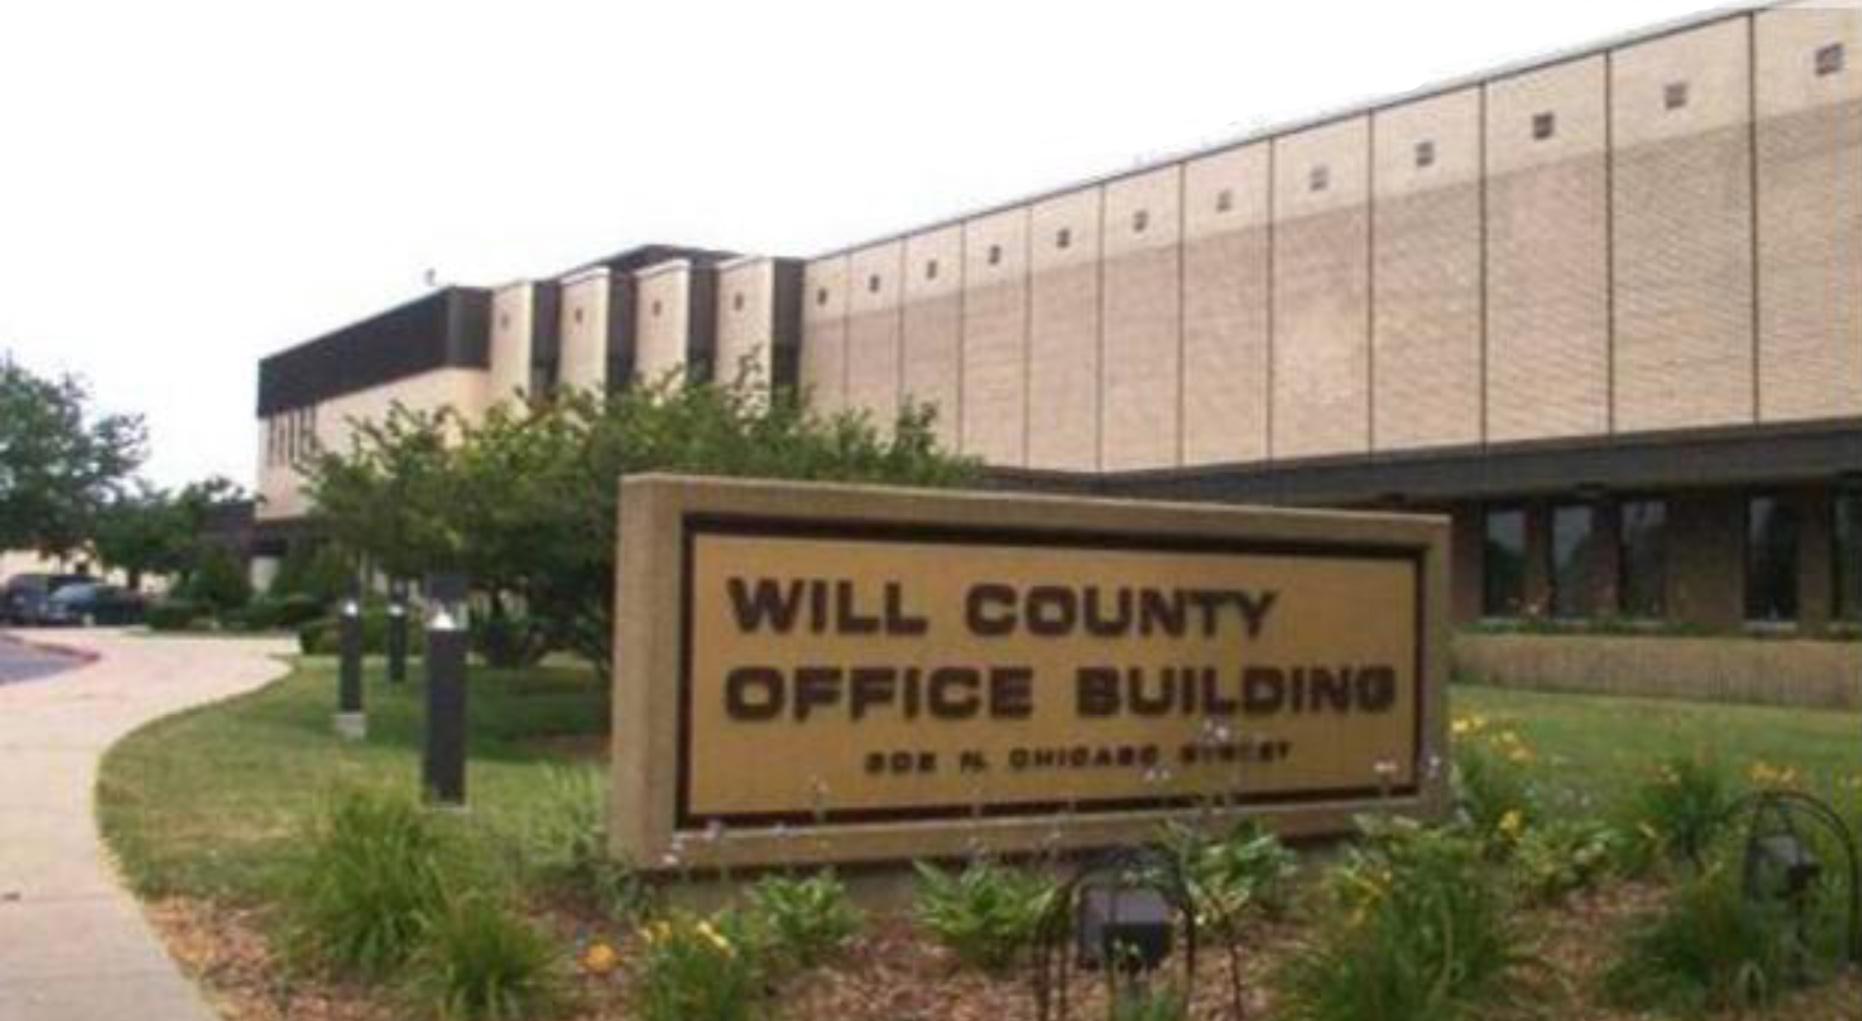 Illinois will county peotone - Will County Clerk Copy